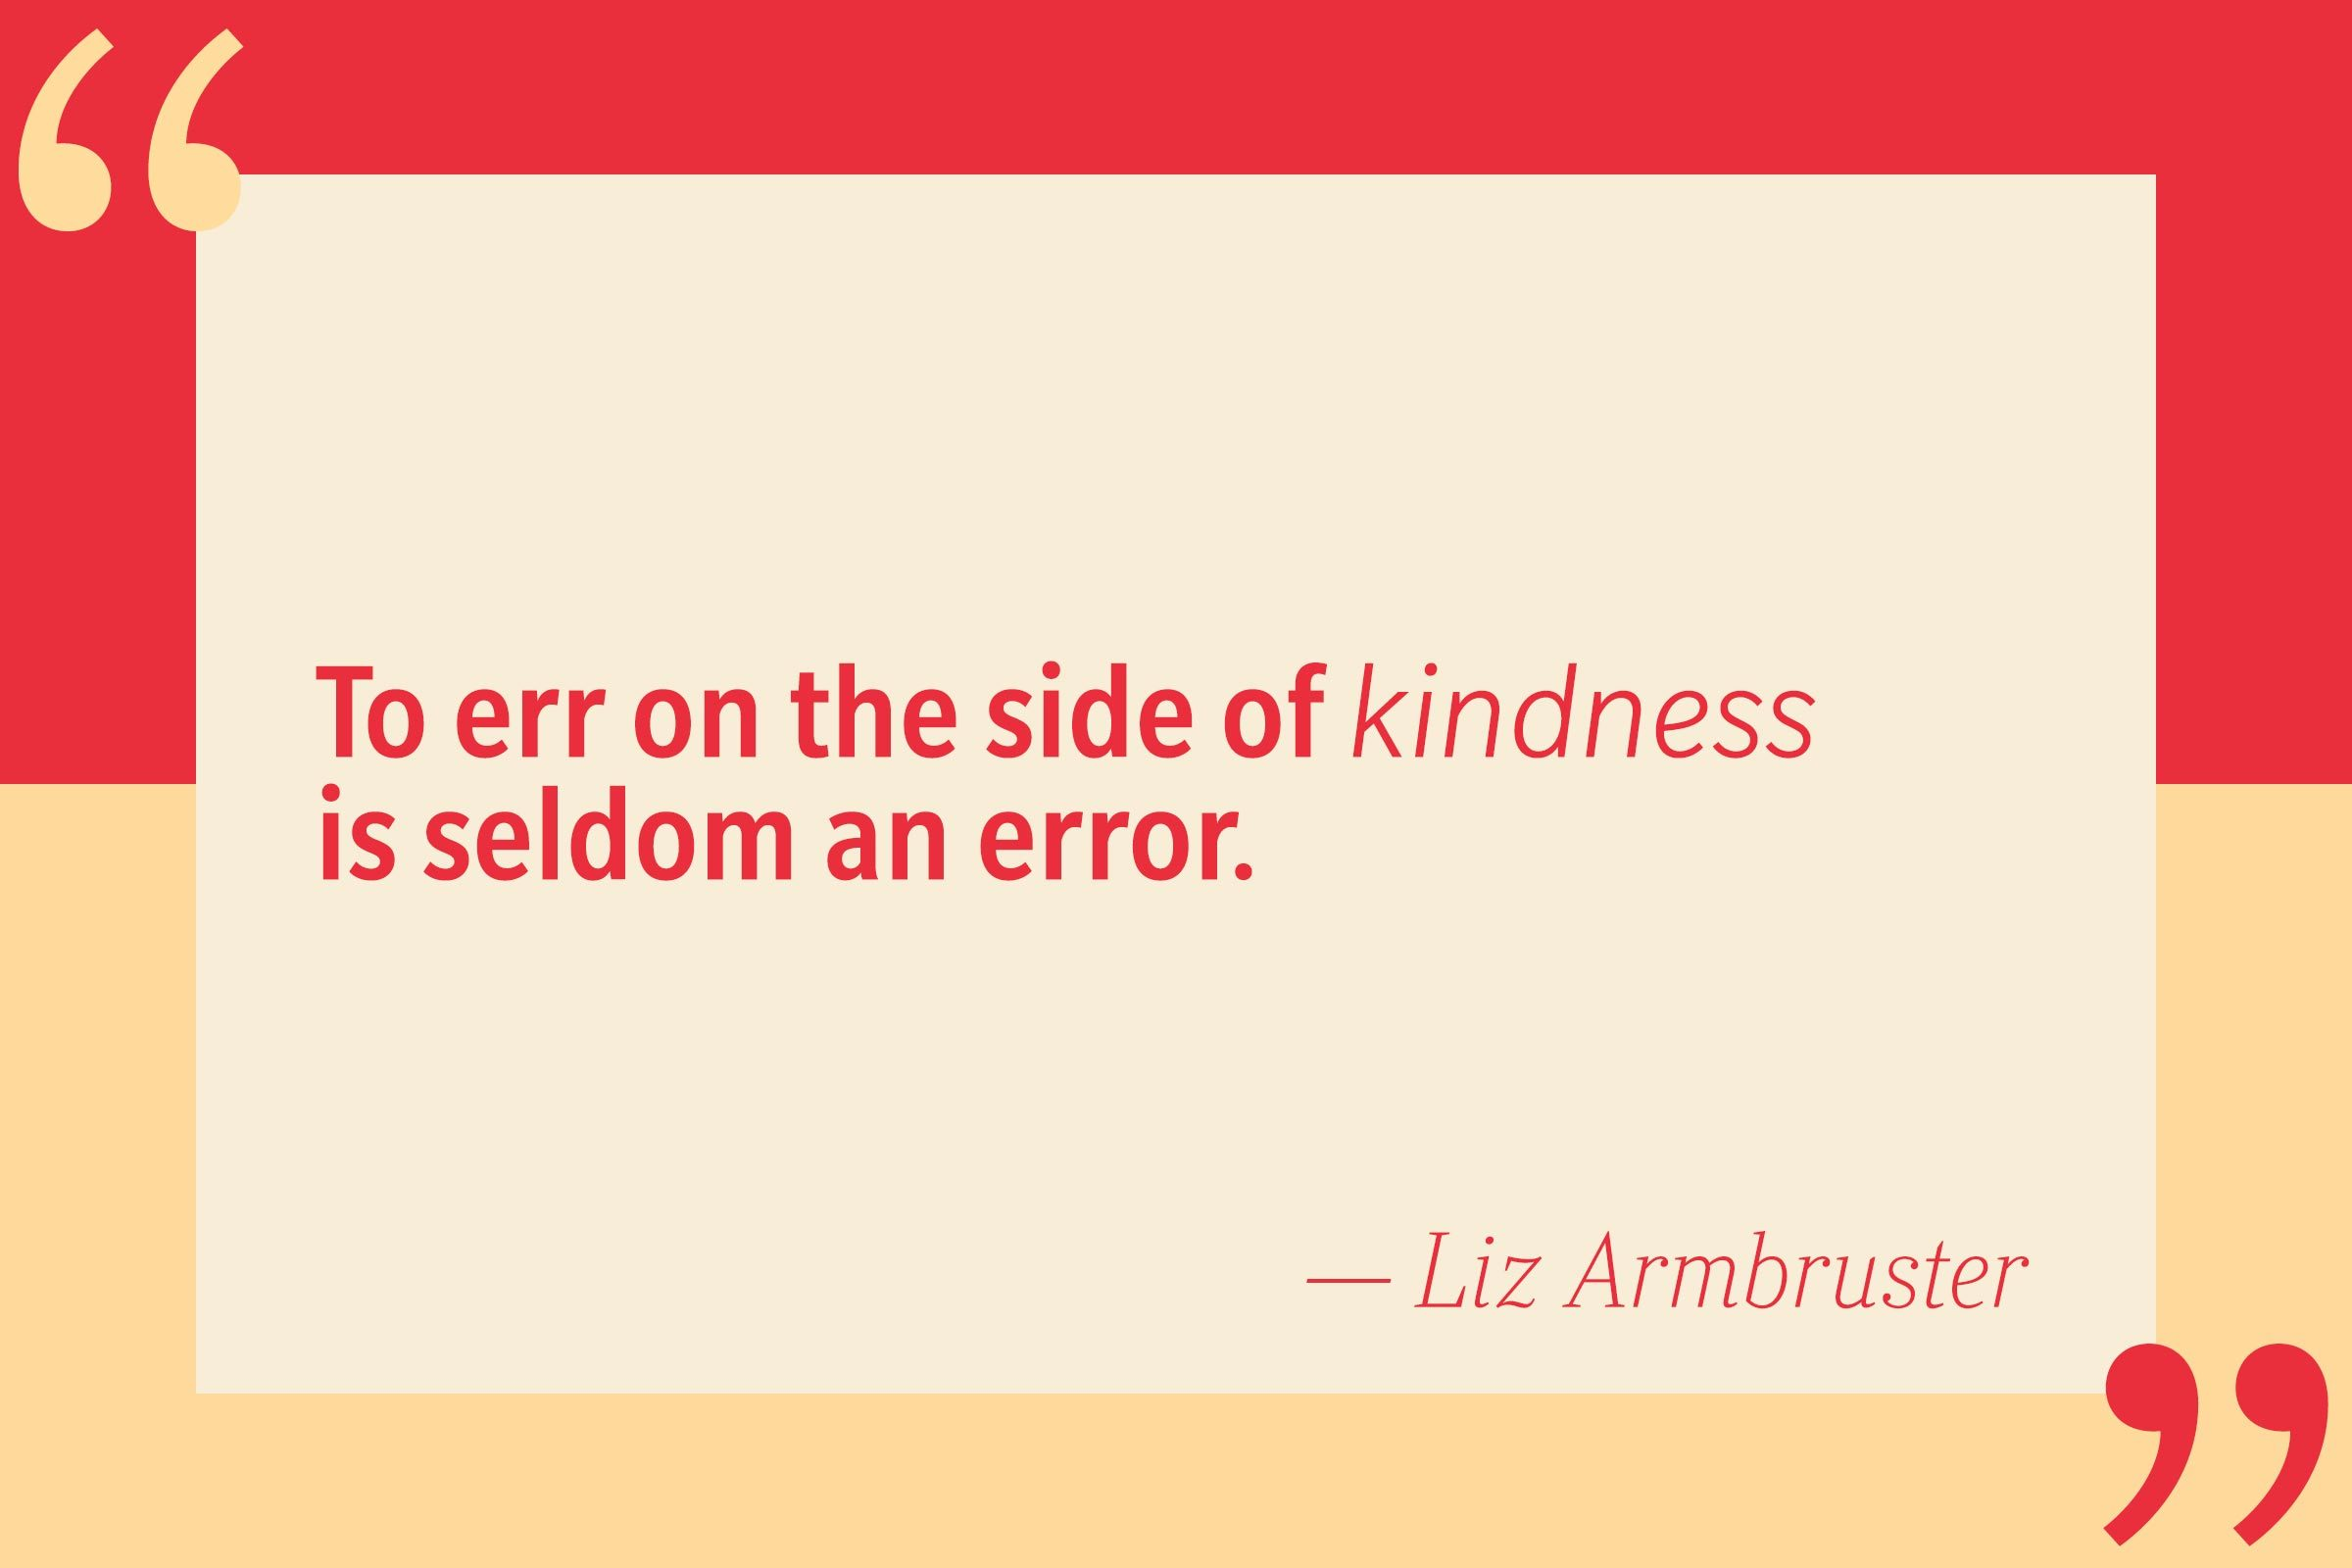 To err on the side of kindness is seldom an error. — Liz Armbruster